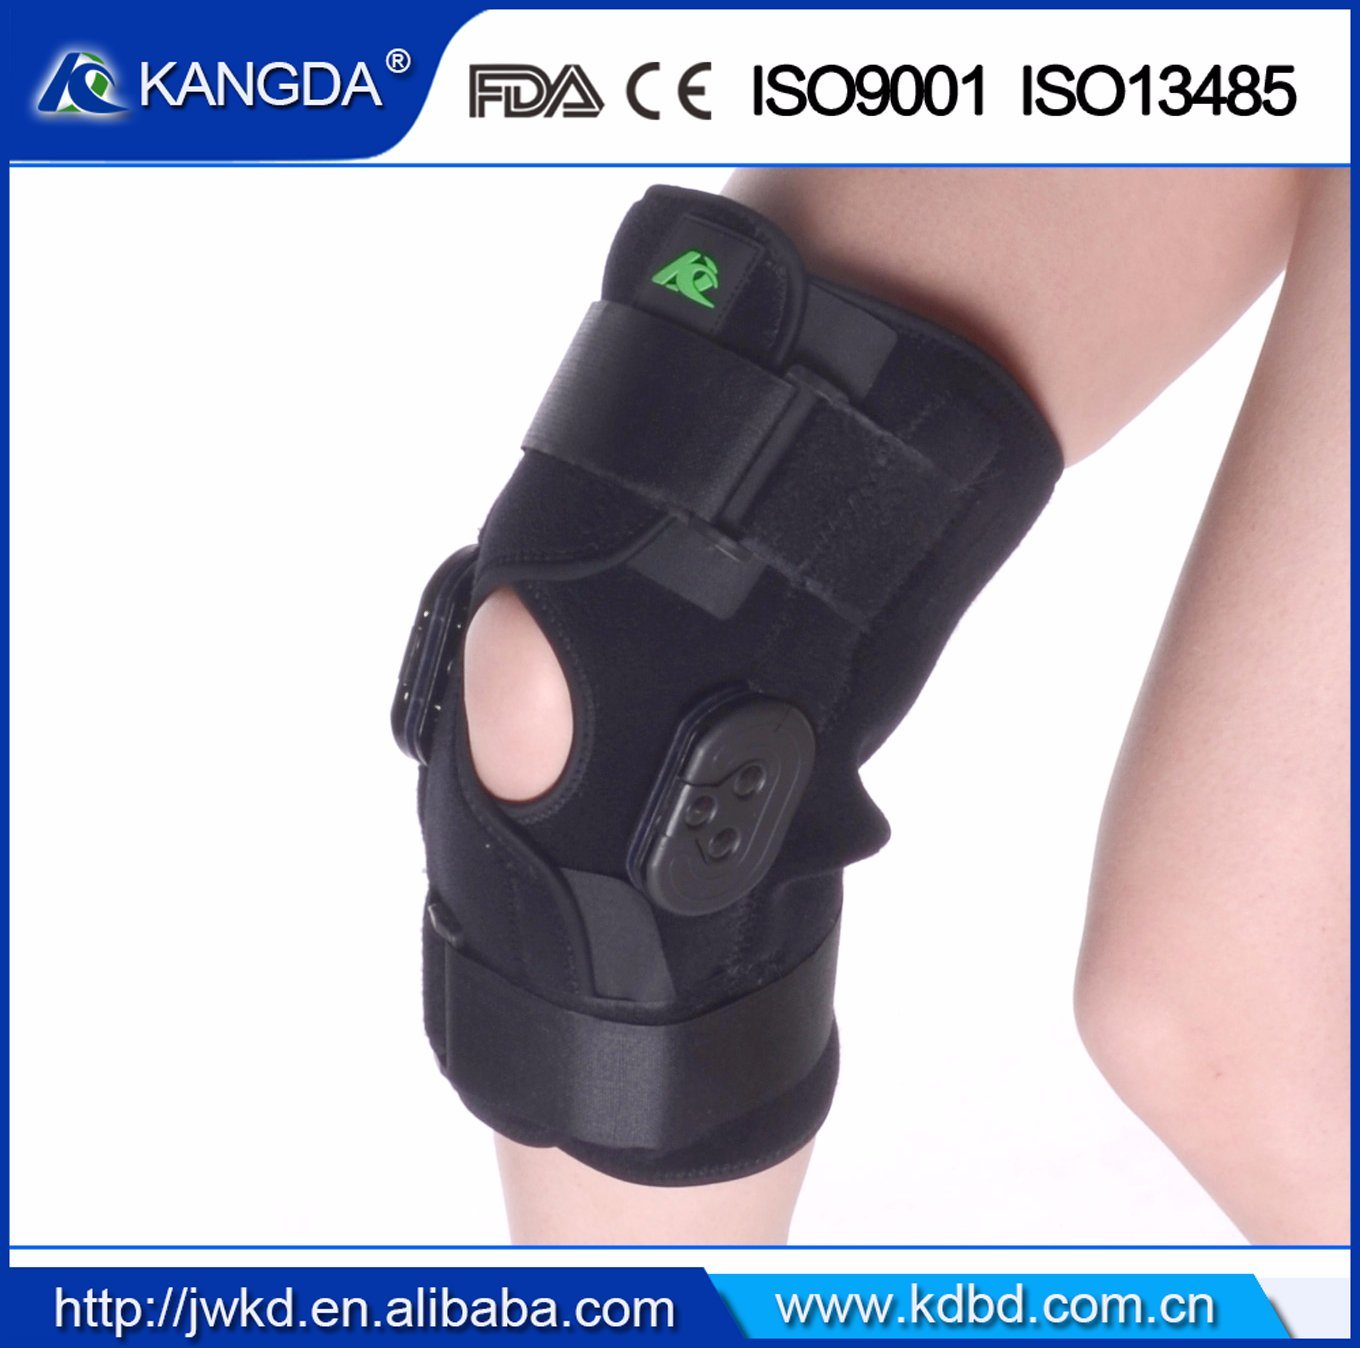 Adjustable Knee Orthosis Brace Knee Support Brace Manufacturer Ce FDA ISO